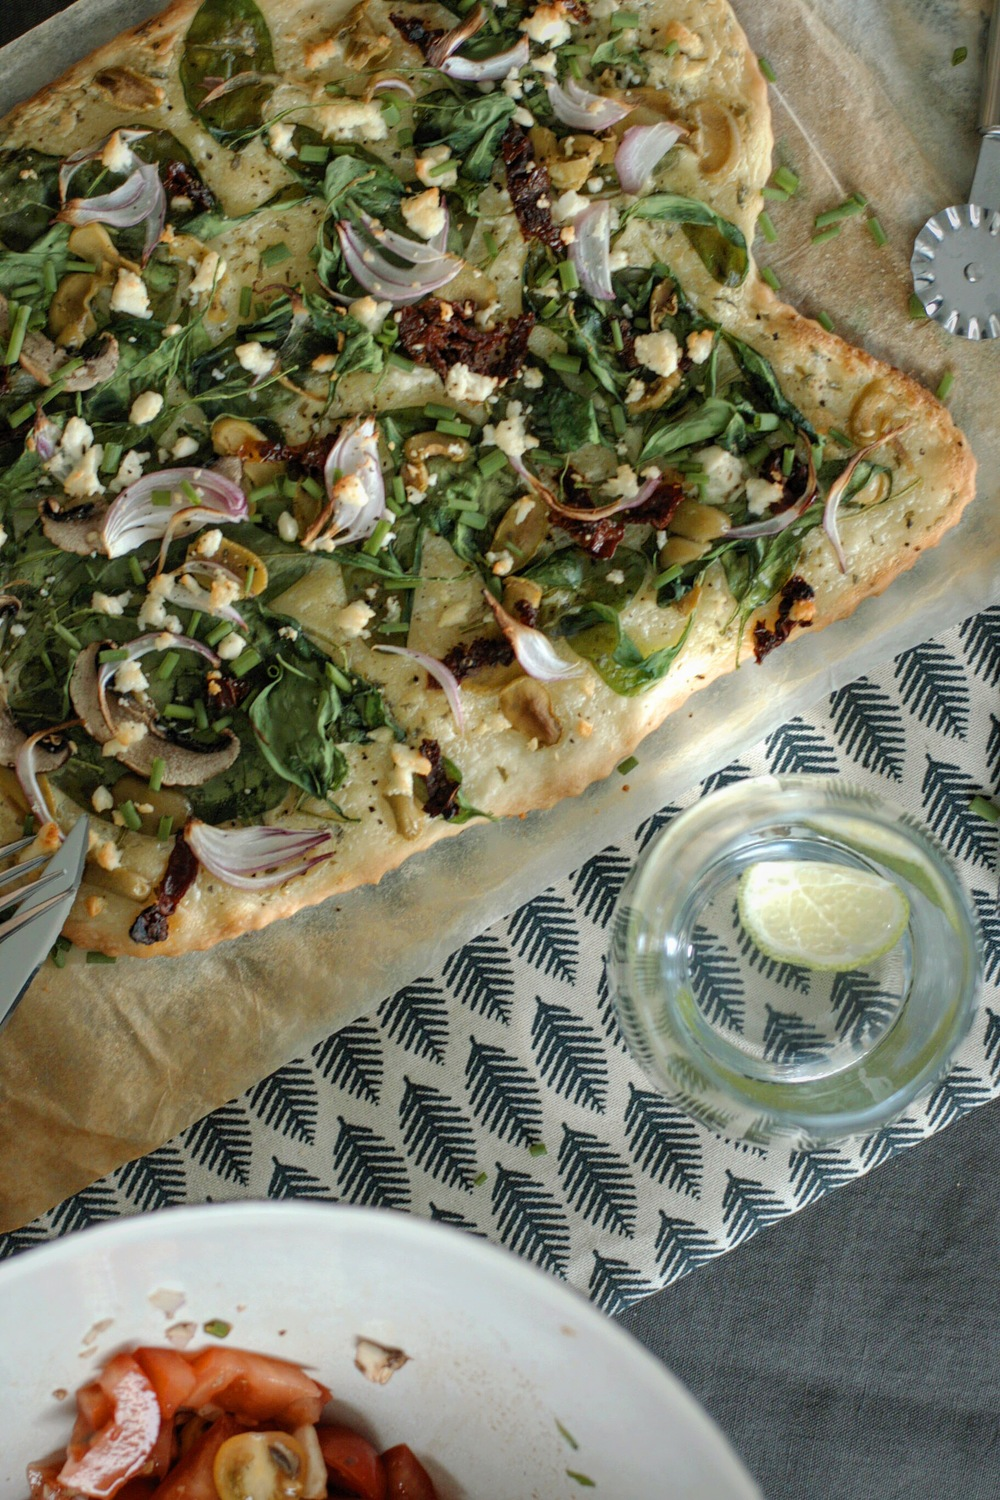 SHAREAT-Flammkuchen